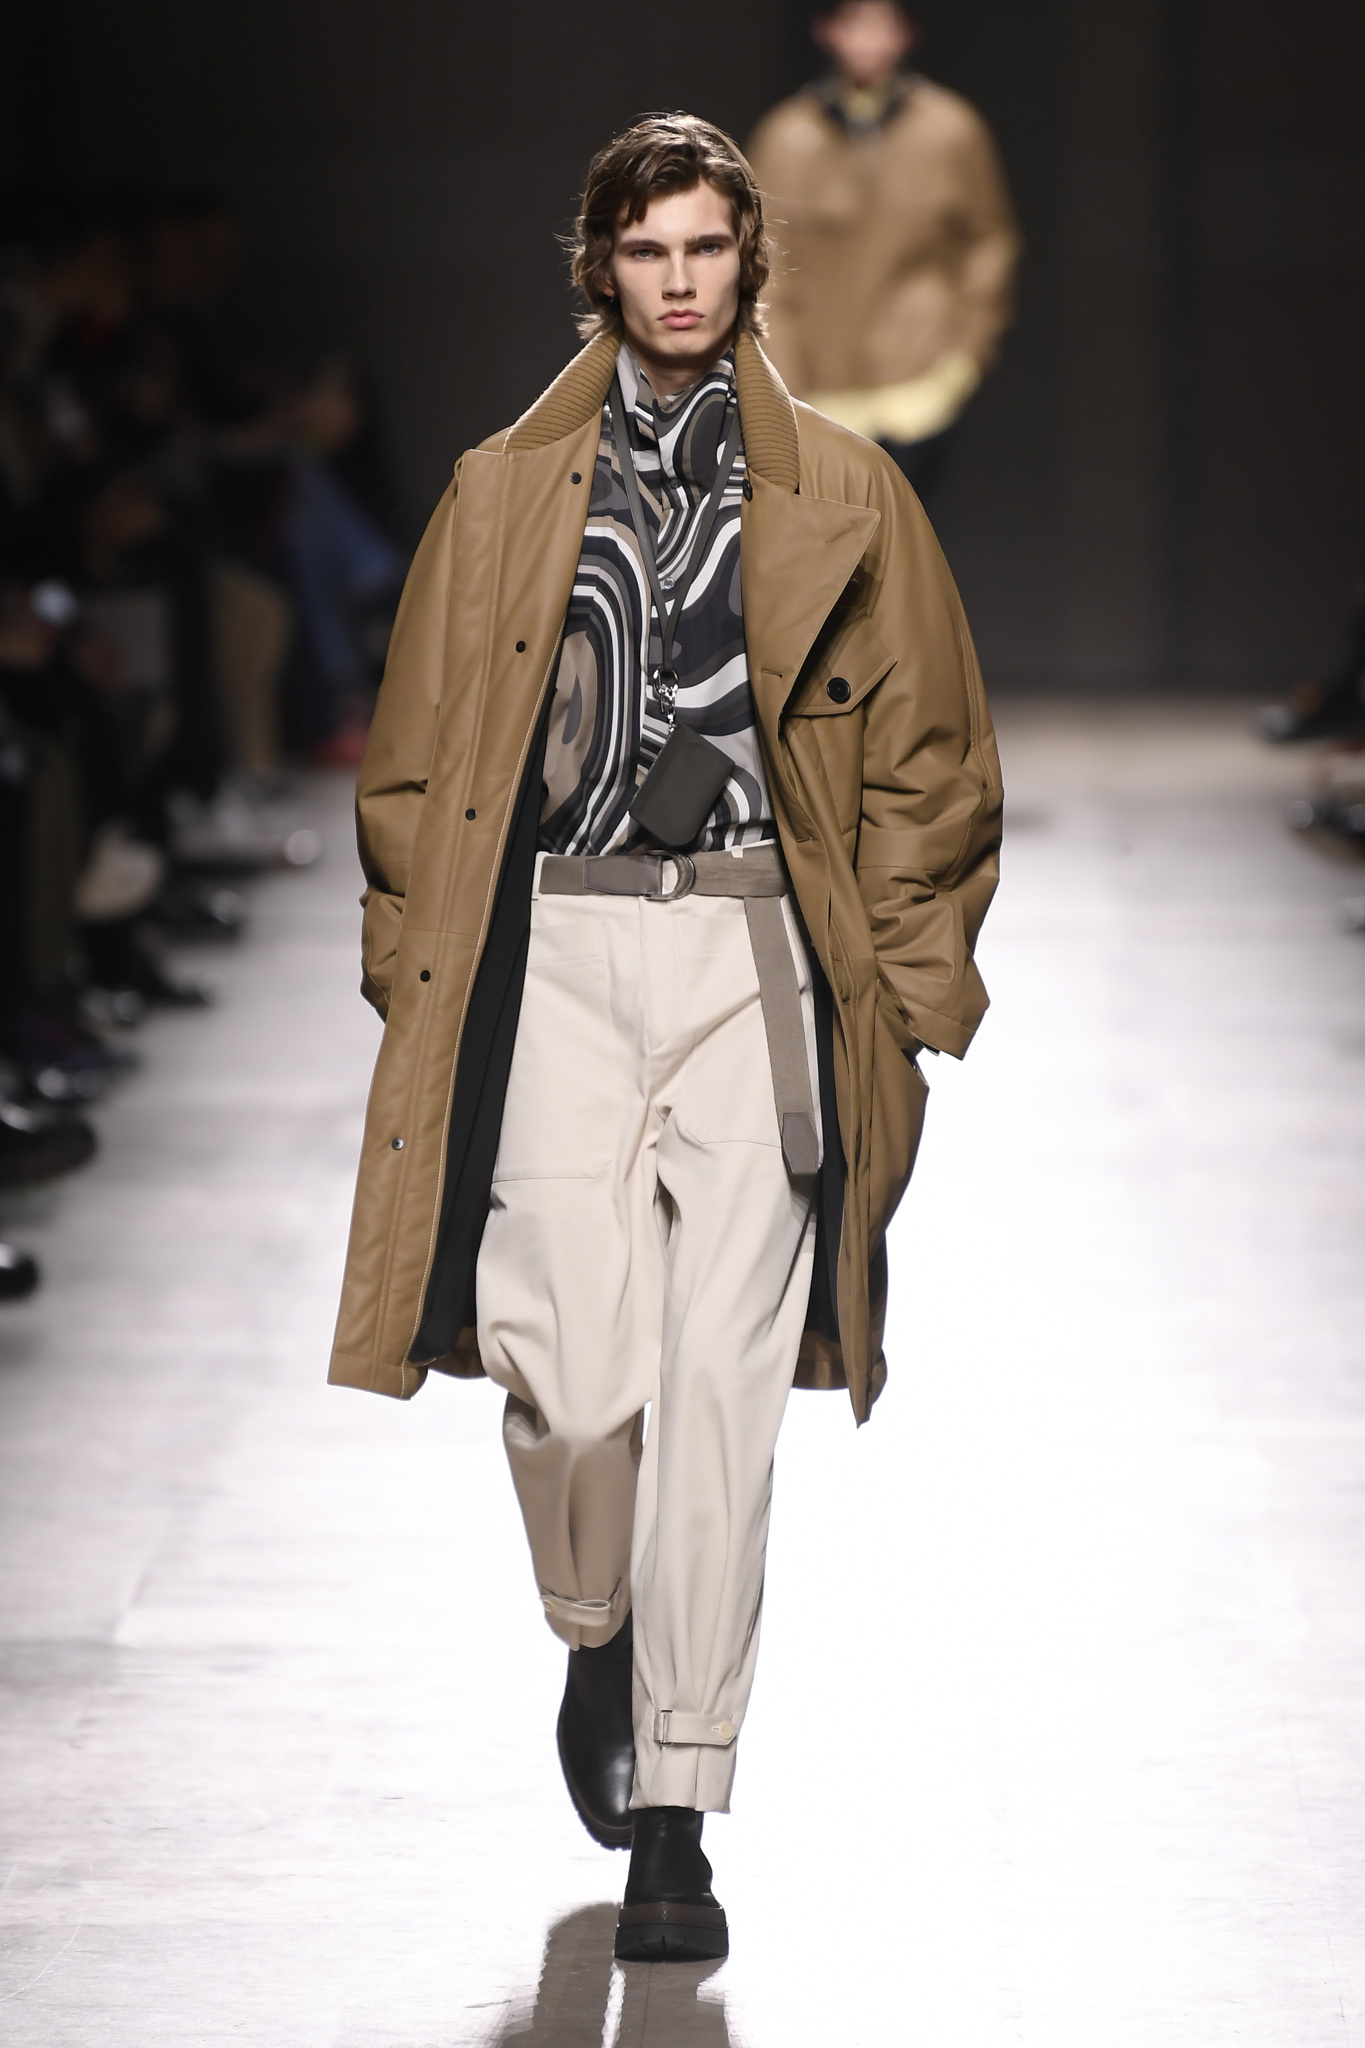 Hermès Men's Fall 2020